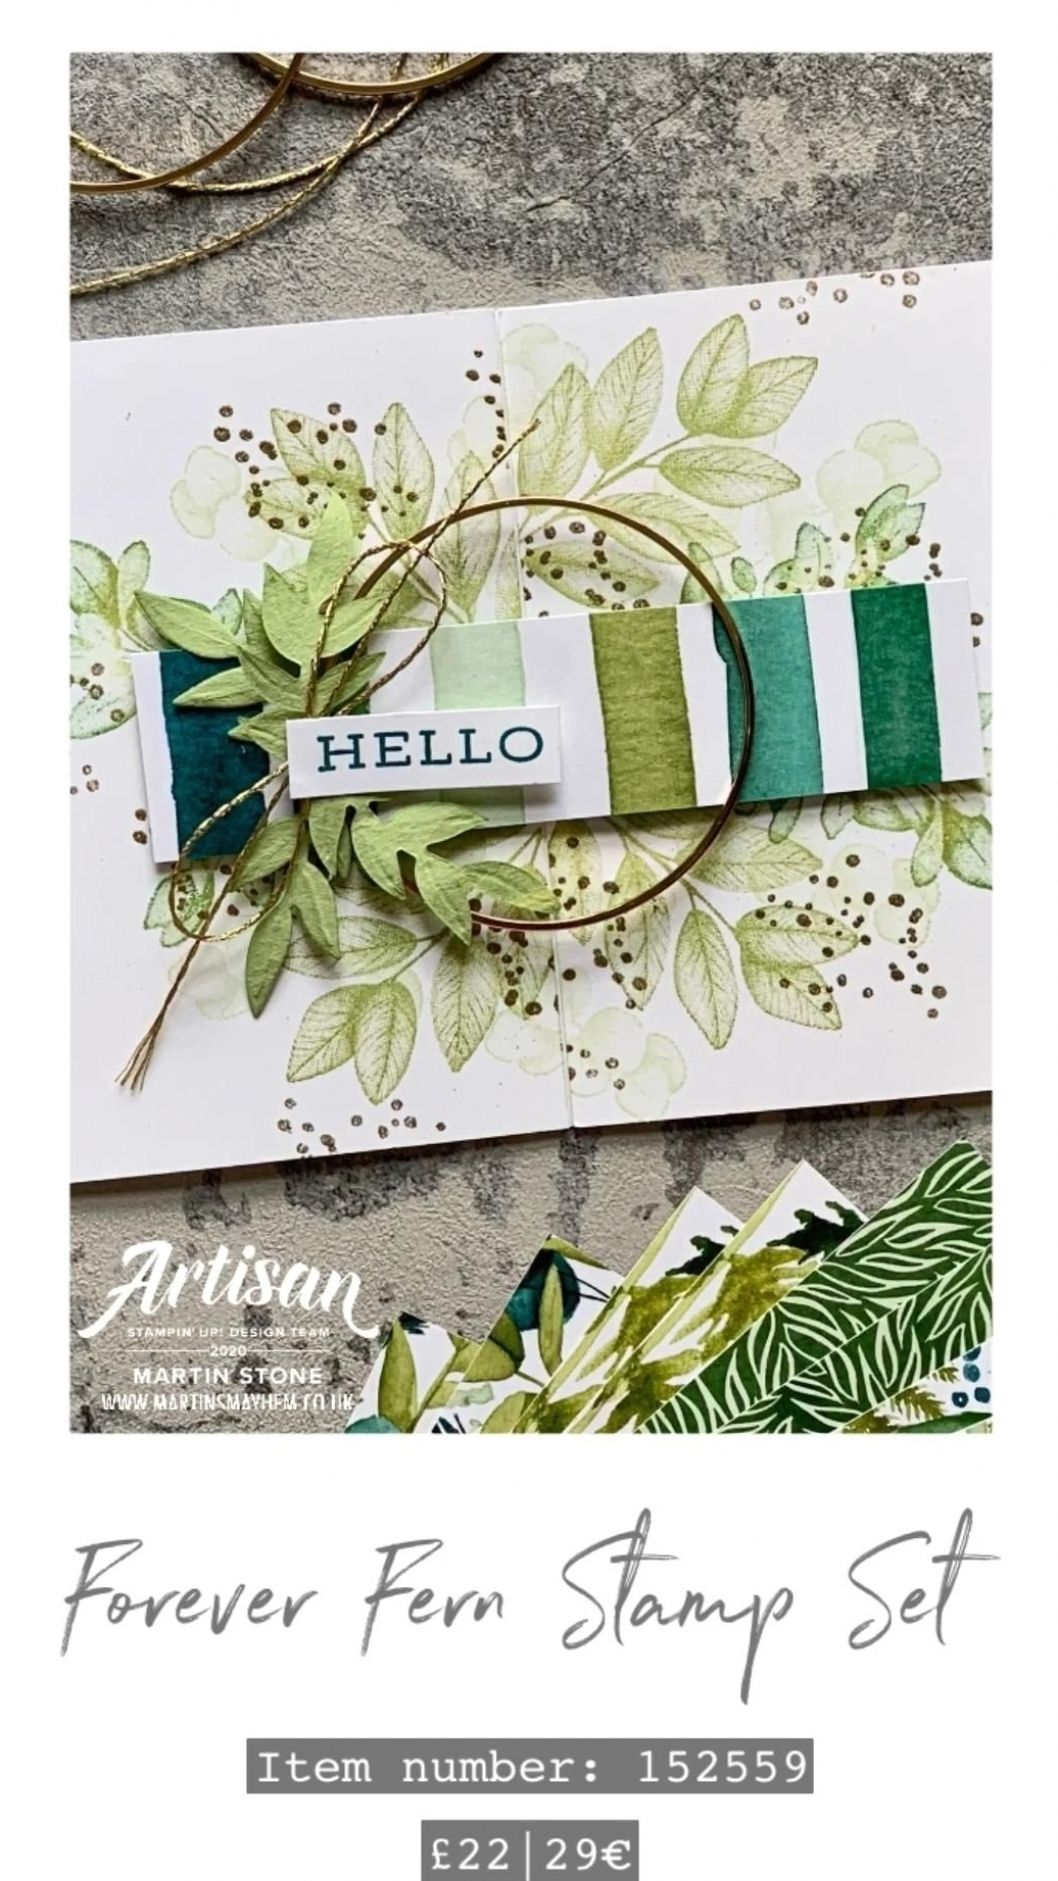 Stampin' Up! Forever Fern Card